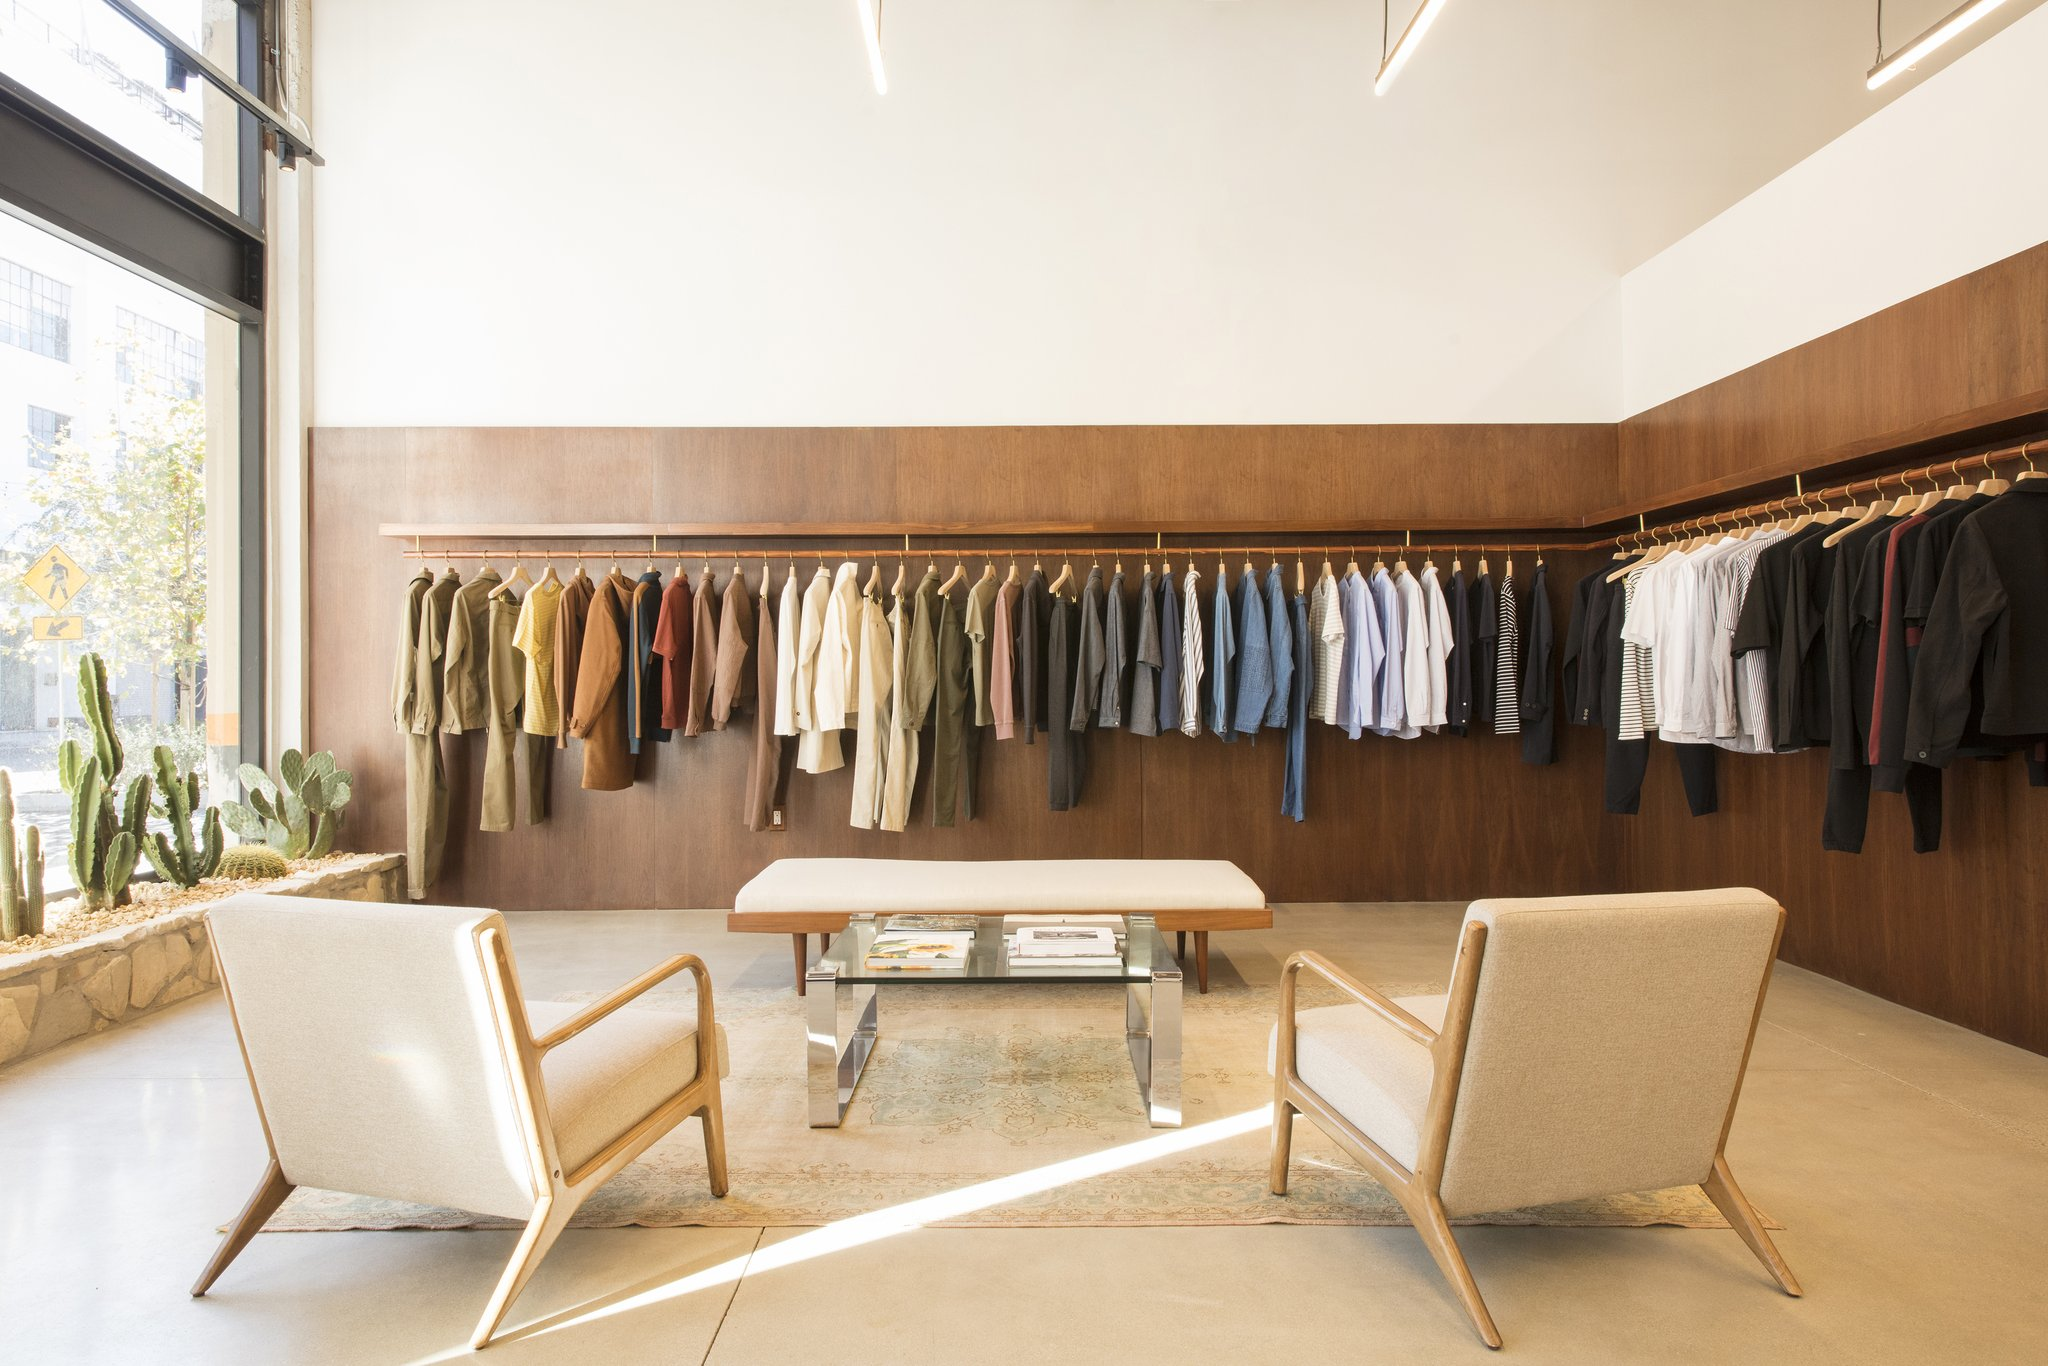 Shades of grey - SHADES OF GREY BY MICAH COHEN focuses on 3 core values: exclusivity, quality and affordability. Run by husband and wife team Micah and Jenny Cohen, the store carries limited quantity menswear that's unique to their brand. They focus on creating high-quality products that you won't find anywhere else.Visit them in Culver City or Downtown LA.